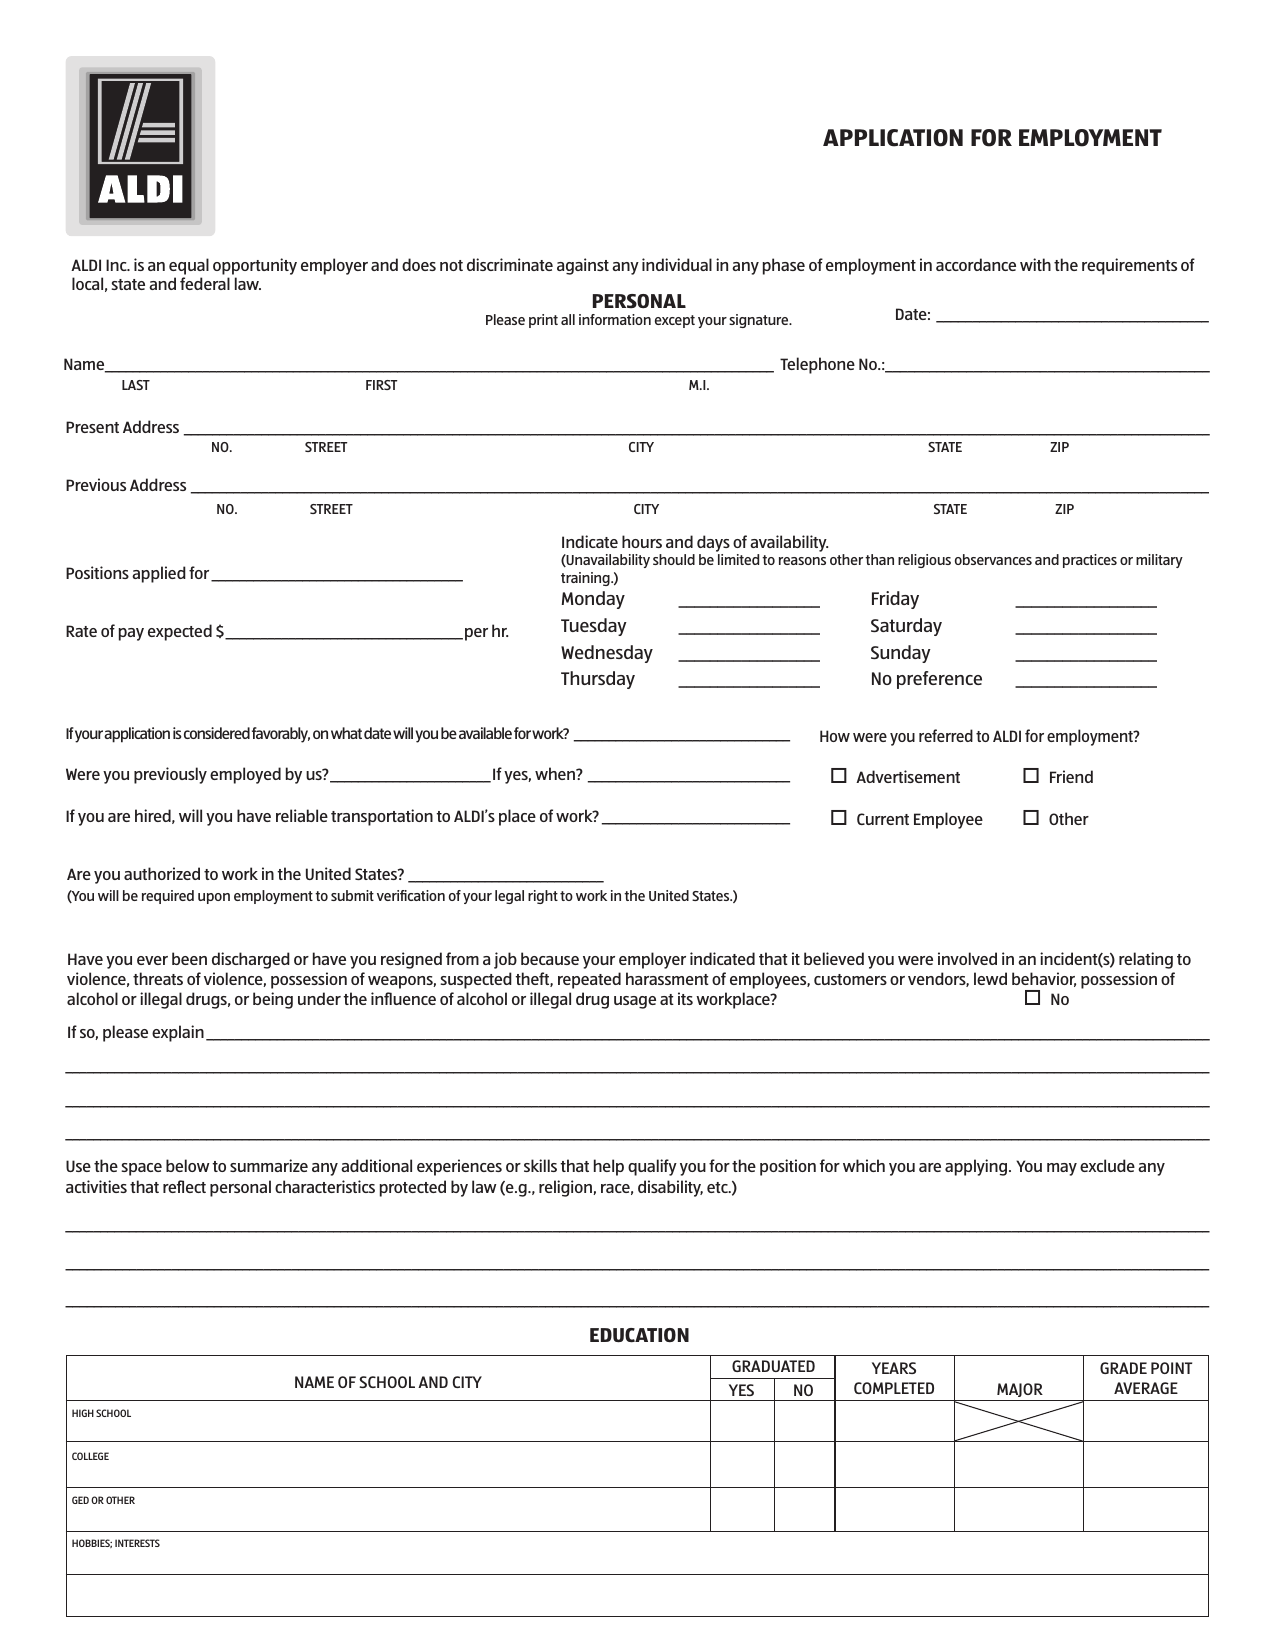 Download ALDI Job Application Form – Careers | PDF | FreeDownloads.net